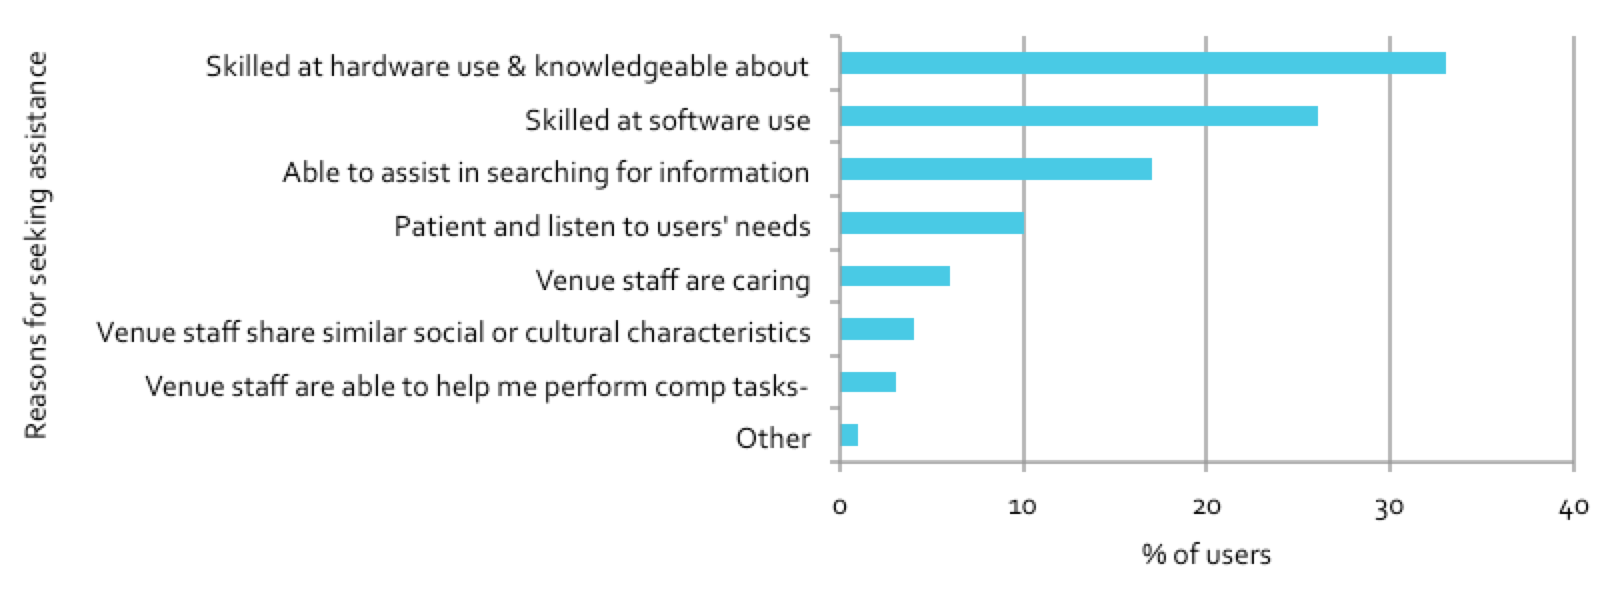 Figure 4.8: Reasons for seeking assistance from venue staff